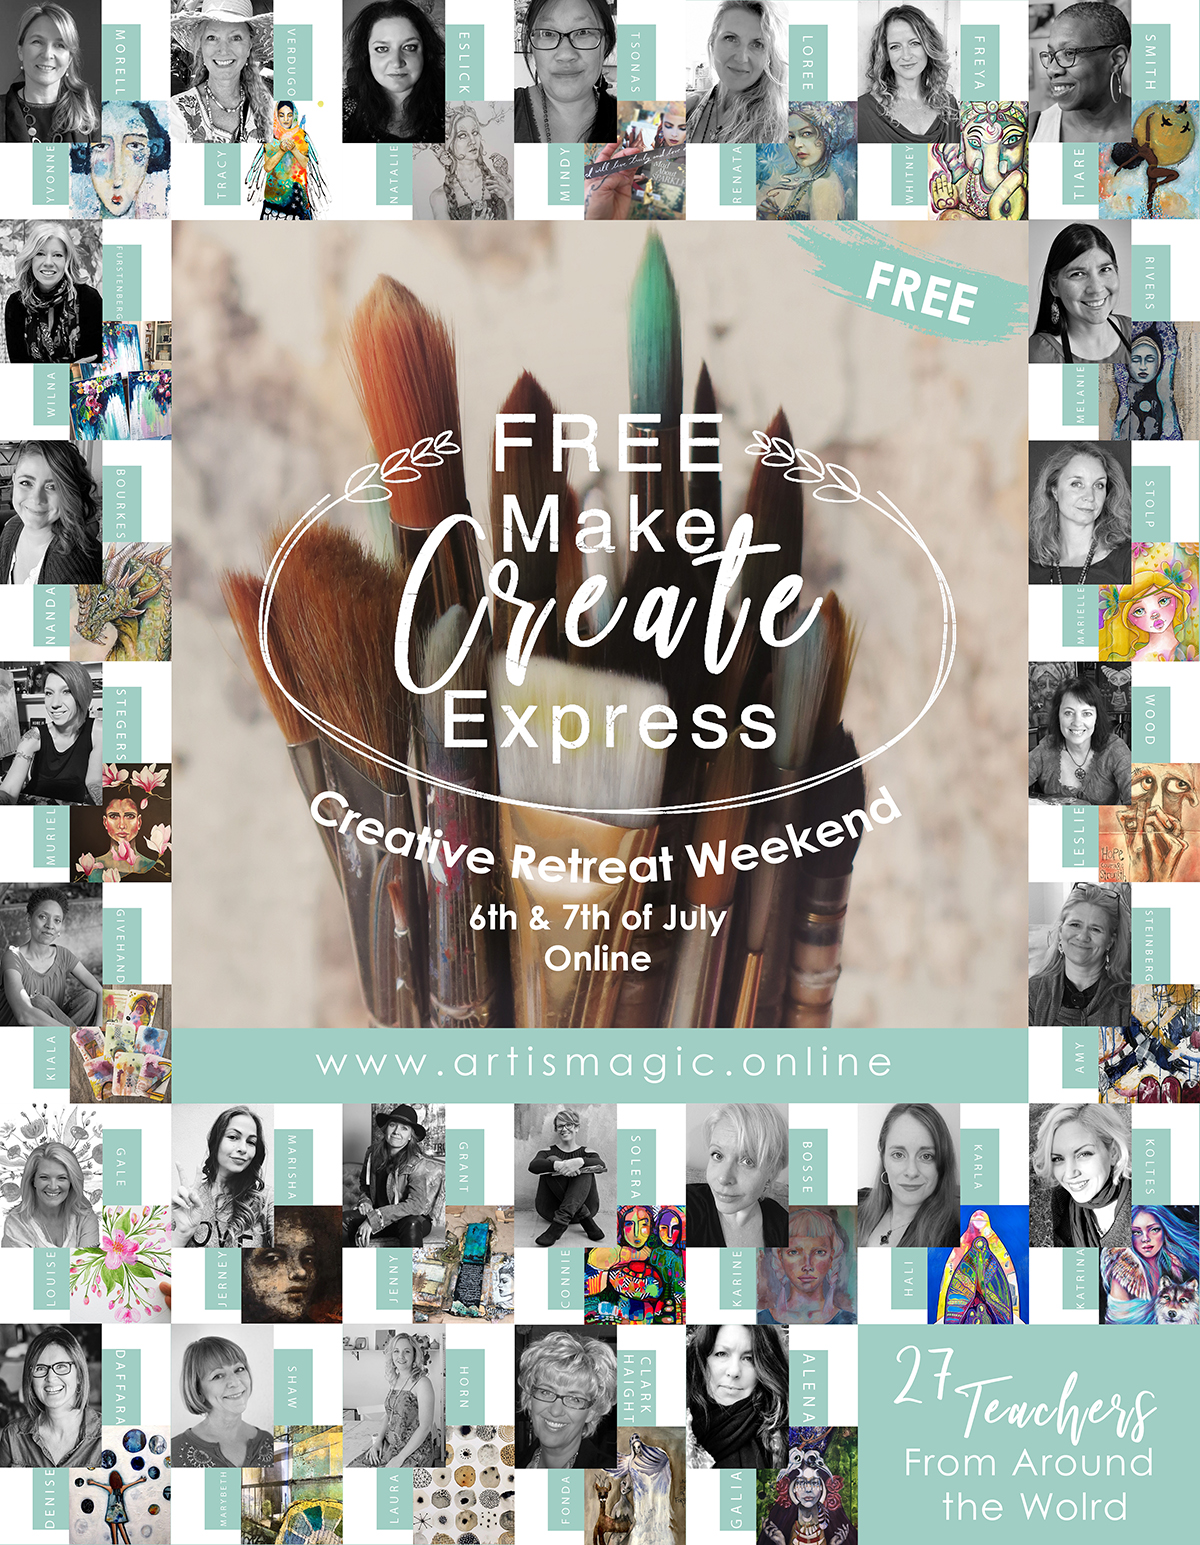 Make Create Express Free Creative Retreat Weekend